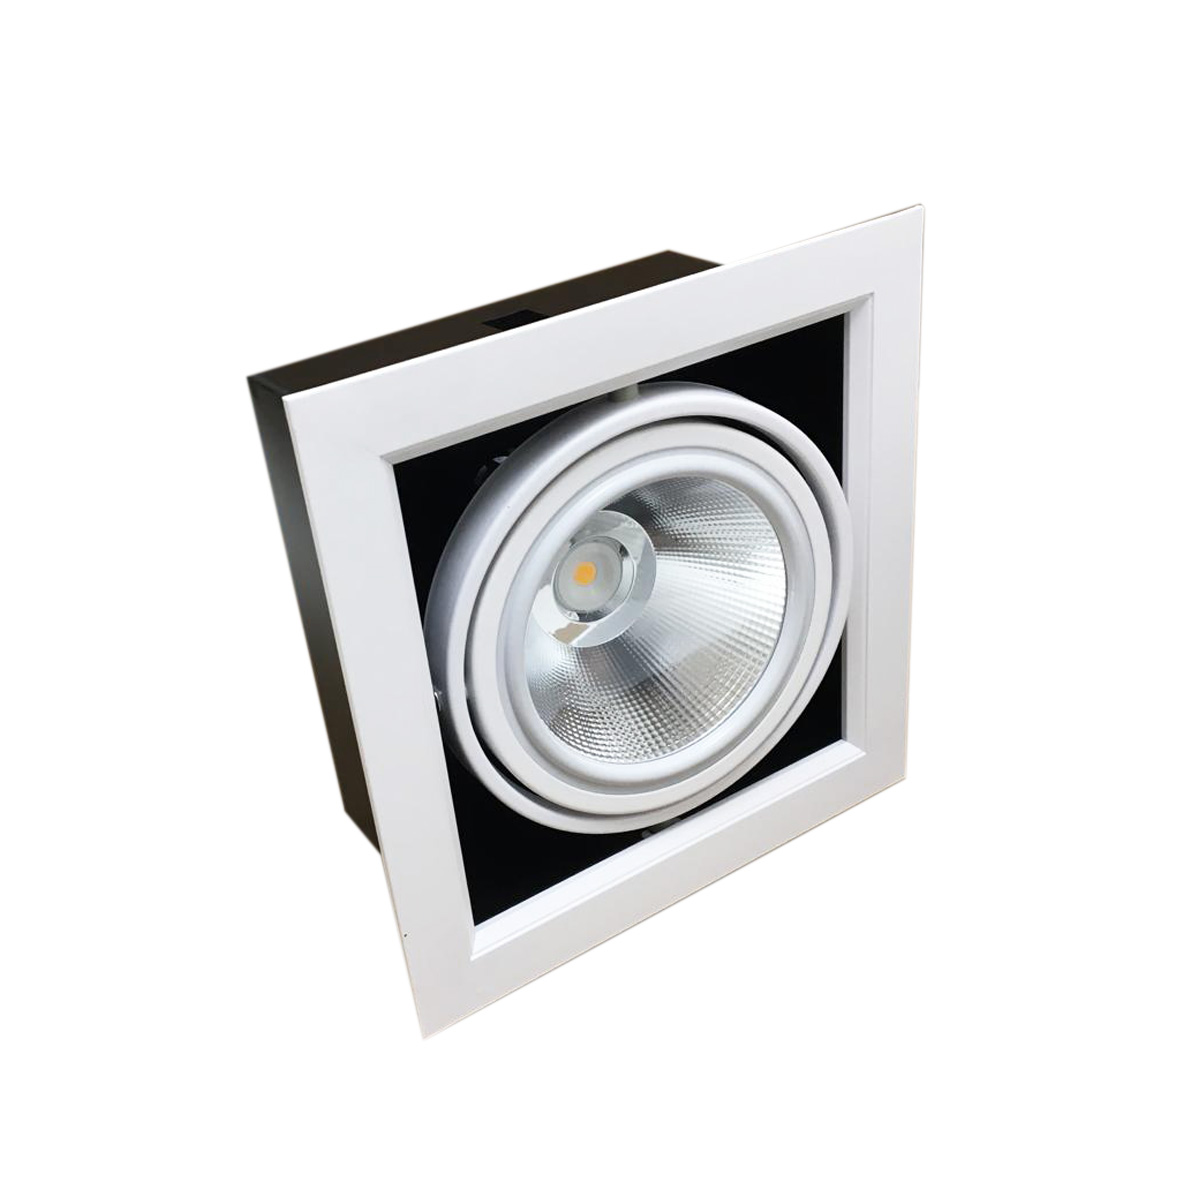 Portafaretto AR111 Ajustable 20w Total de 1 Foco LED Anillo Silamp